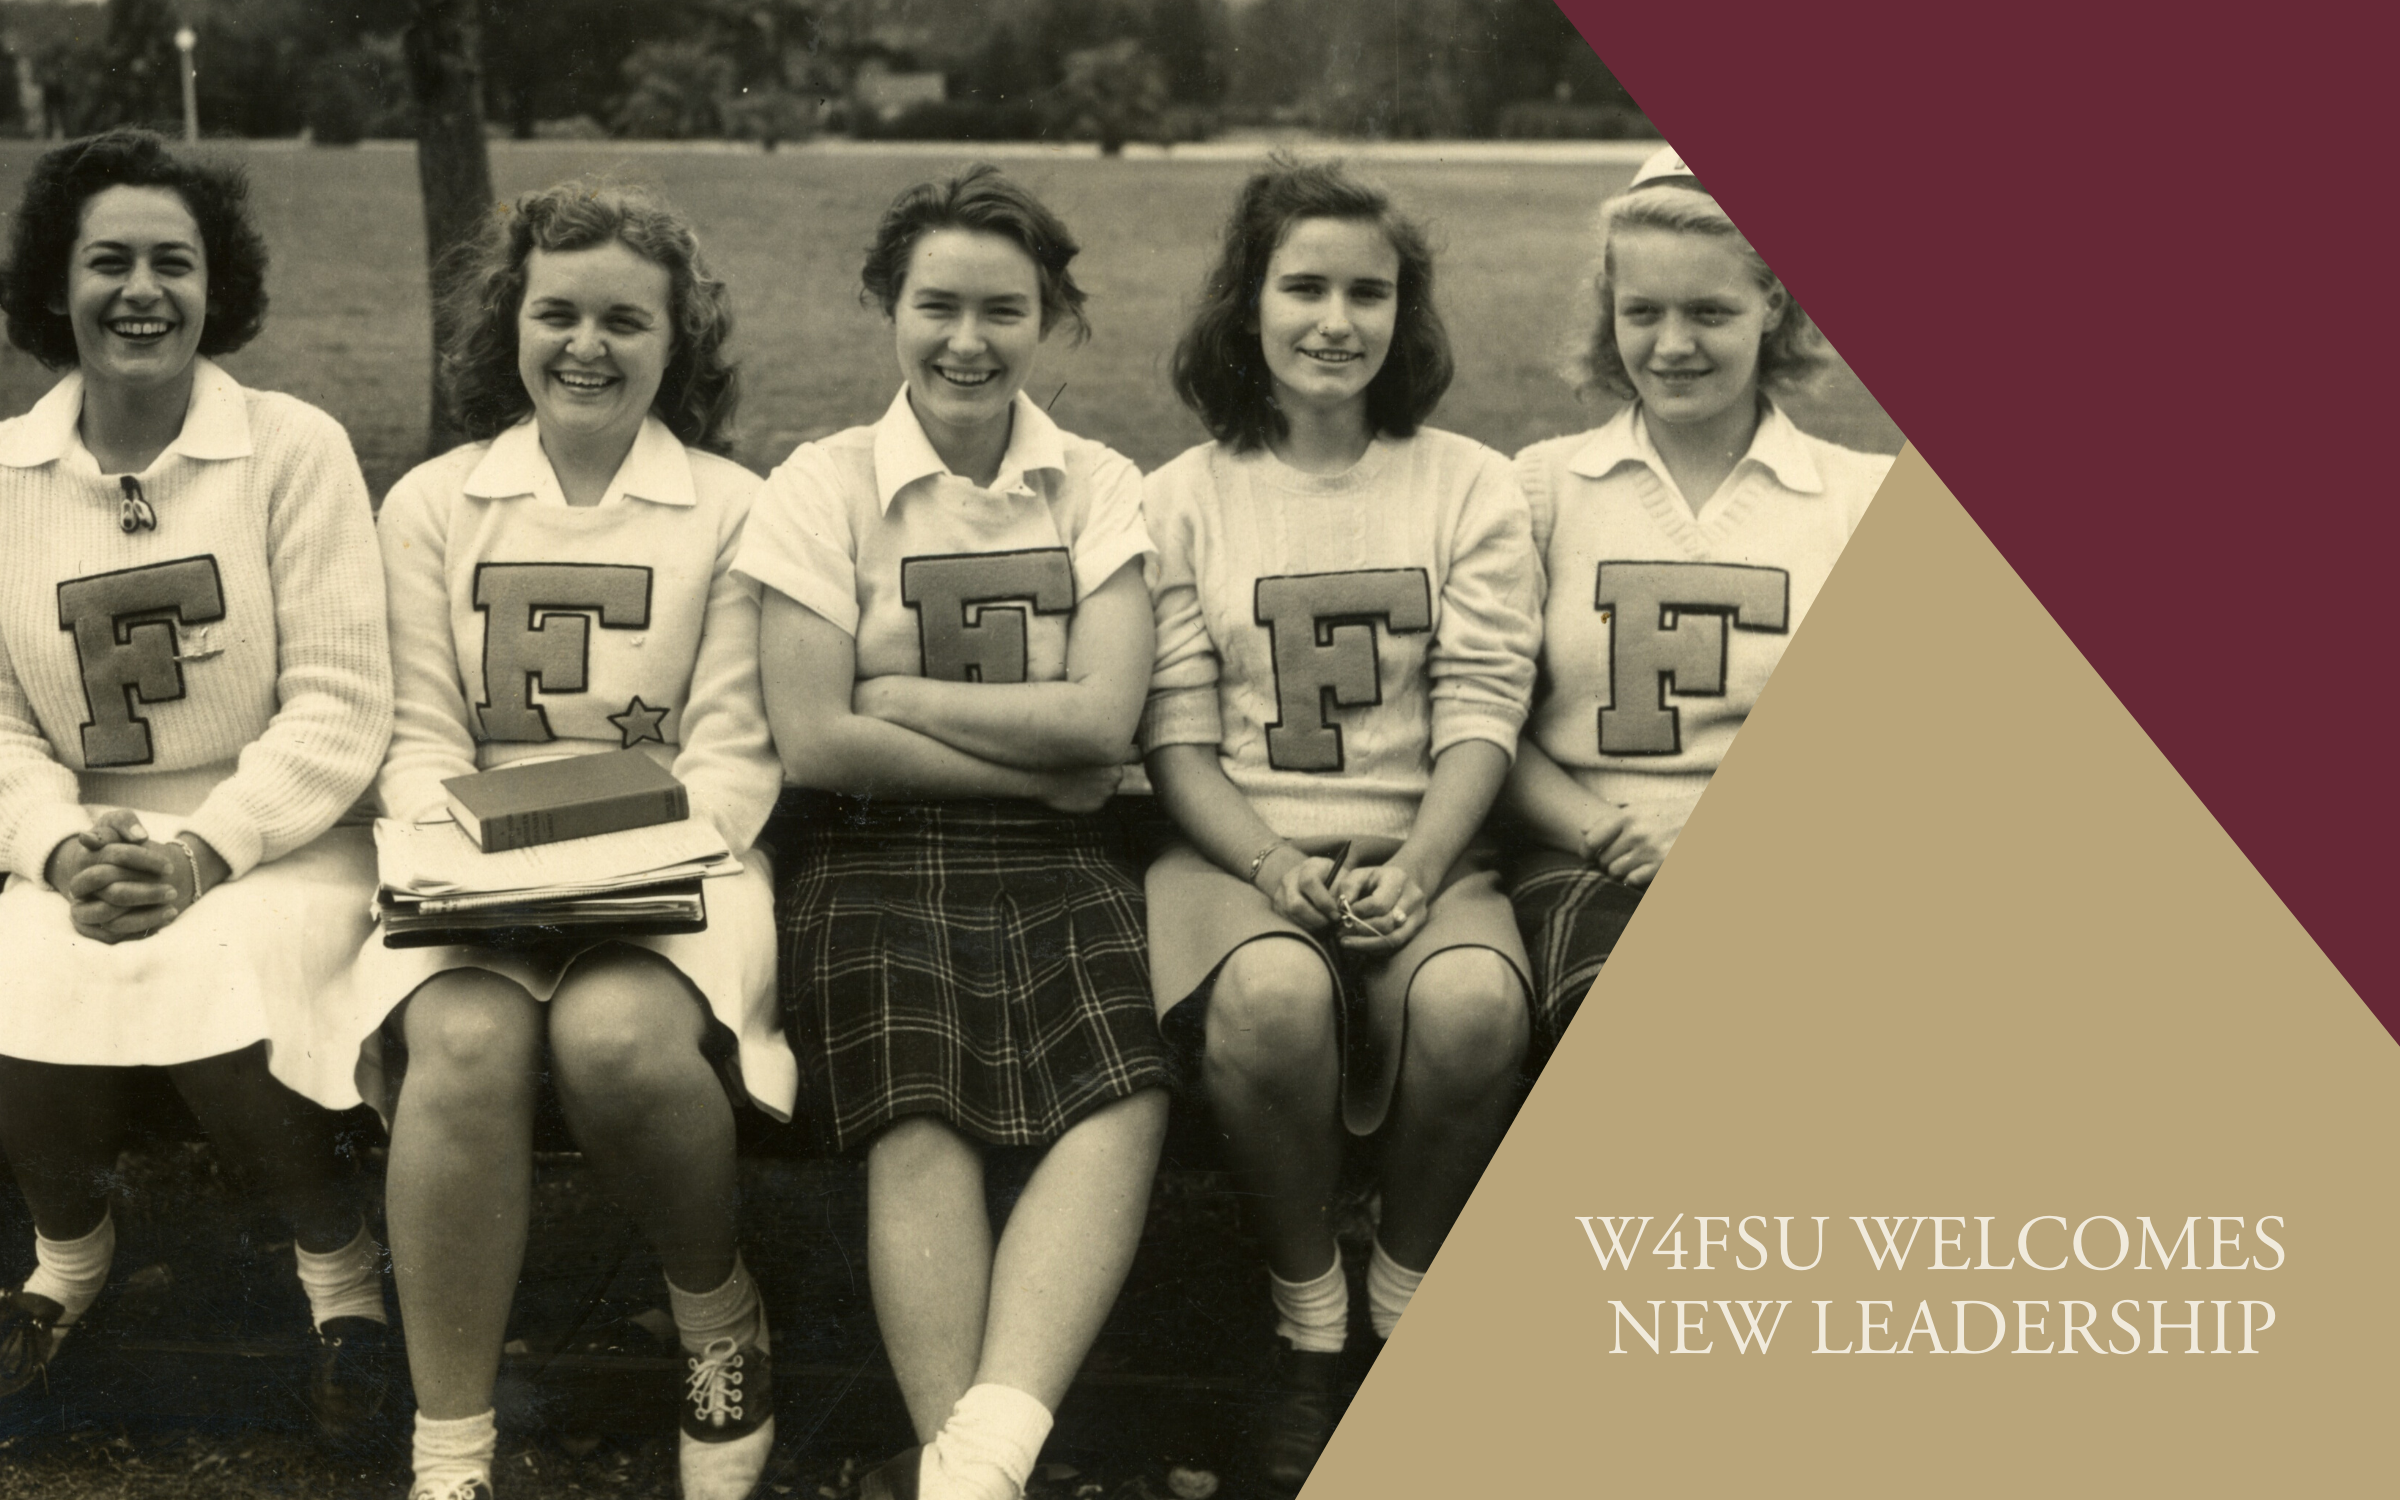 W4FSU Welcomes New Leadership